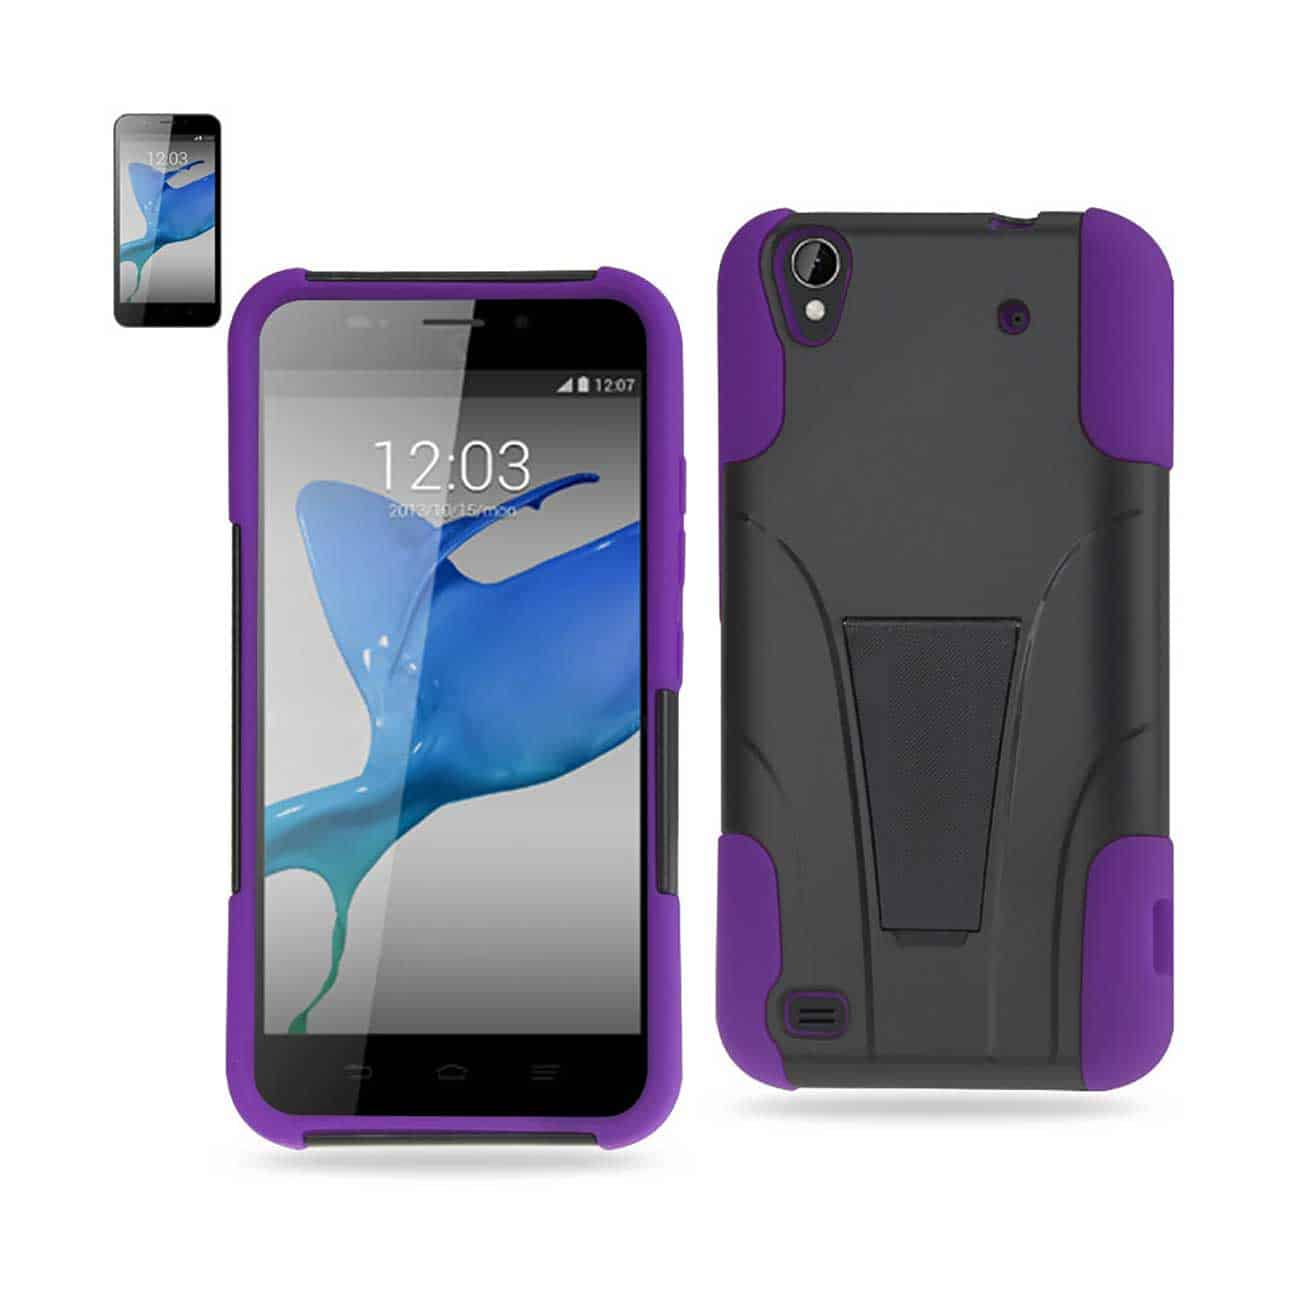 ZTE QUARTZ HYBRID HEAVY DUTY CASE WITH KICKSTAND IN PURPLE BLACK